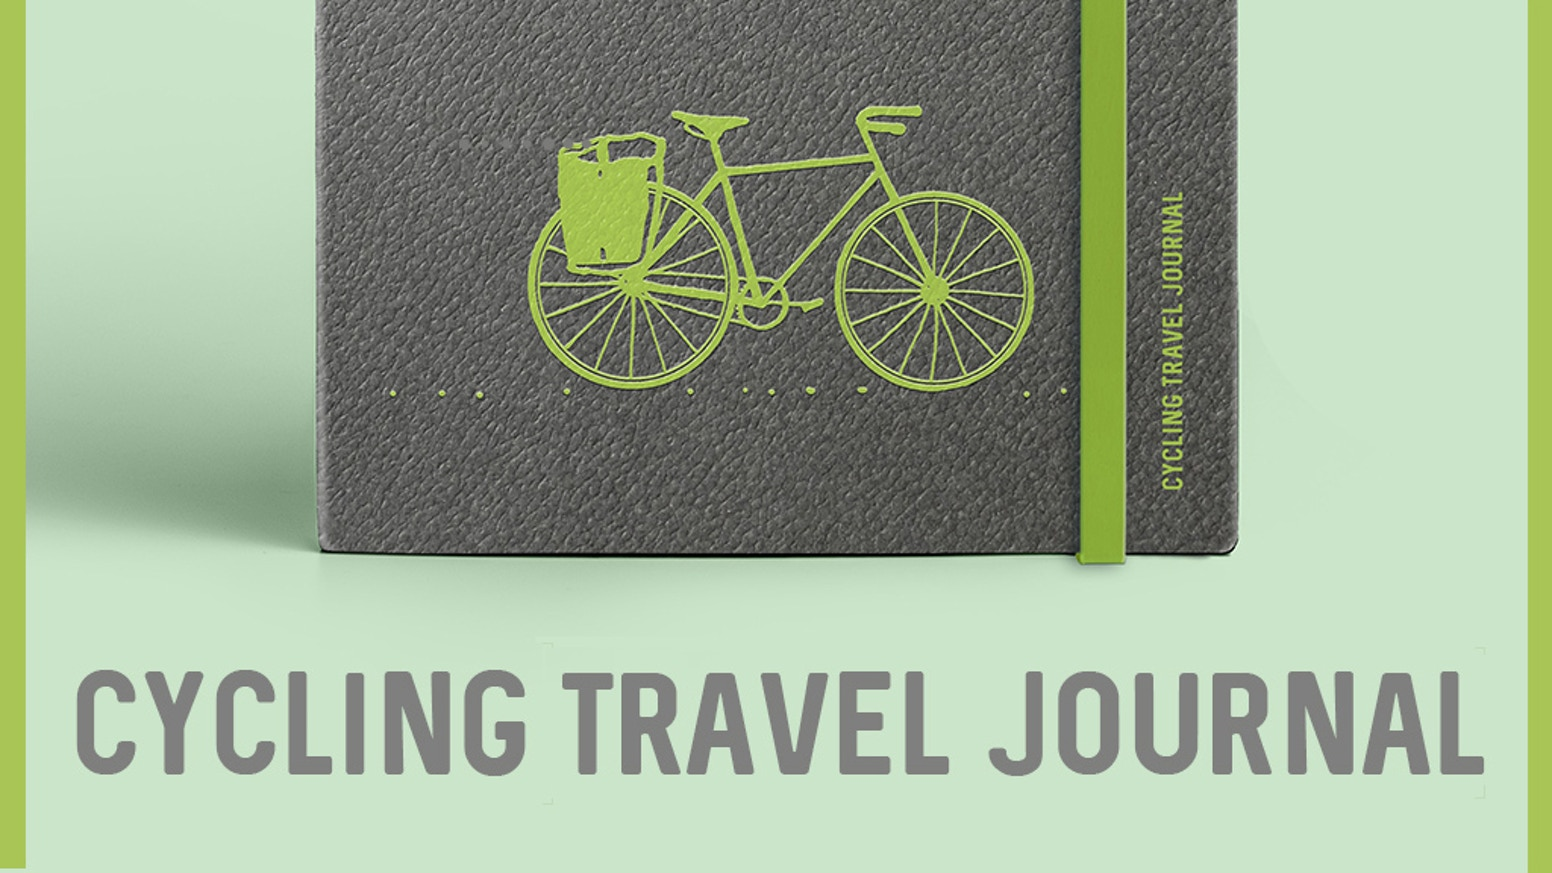 An eco-friendly cycling travel journal designed to help you capture the details of your adventure